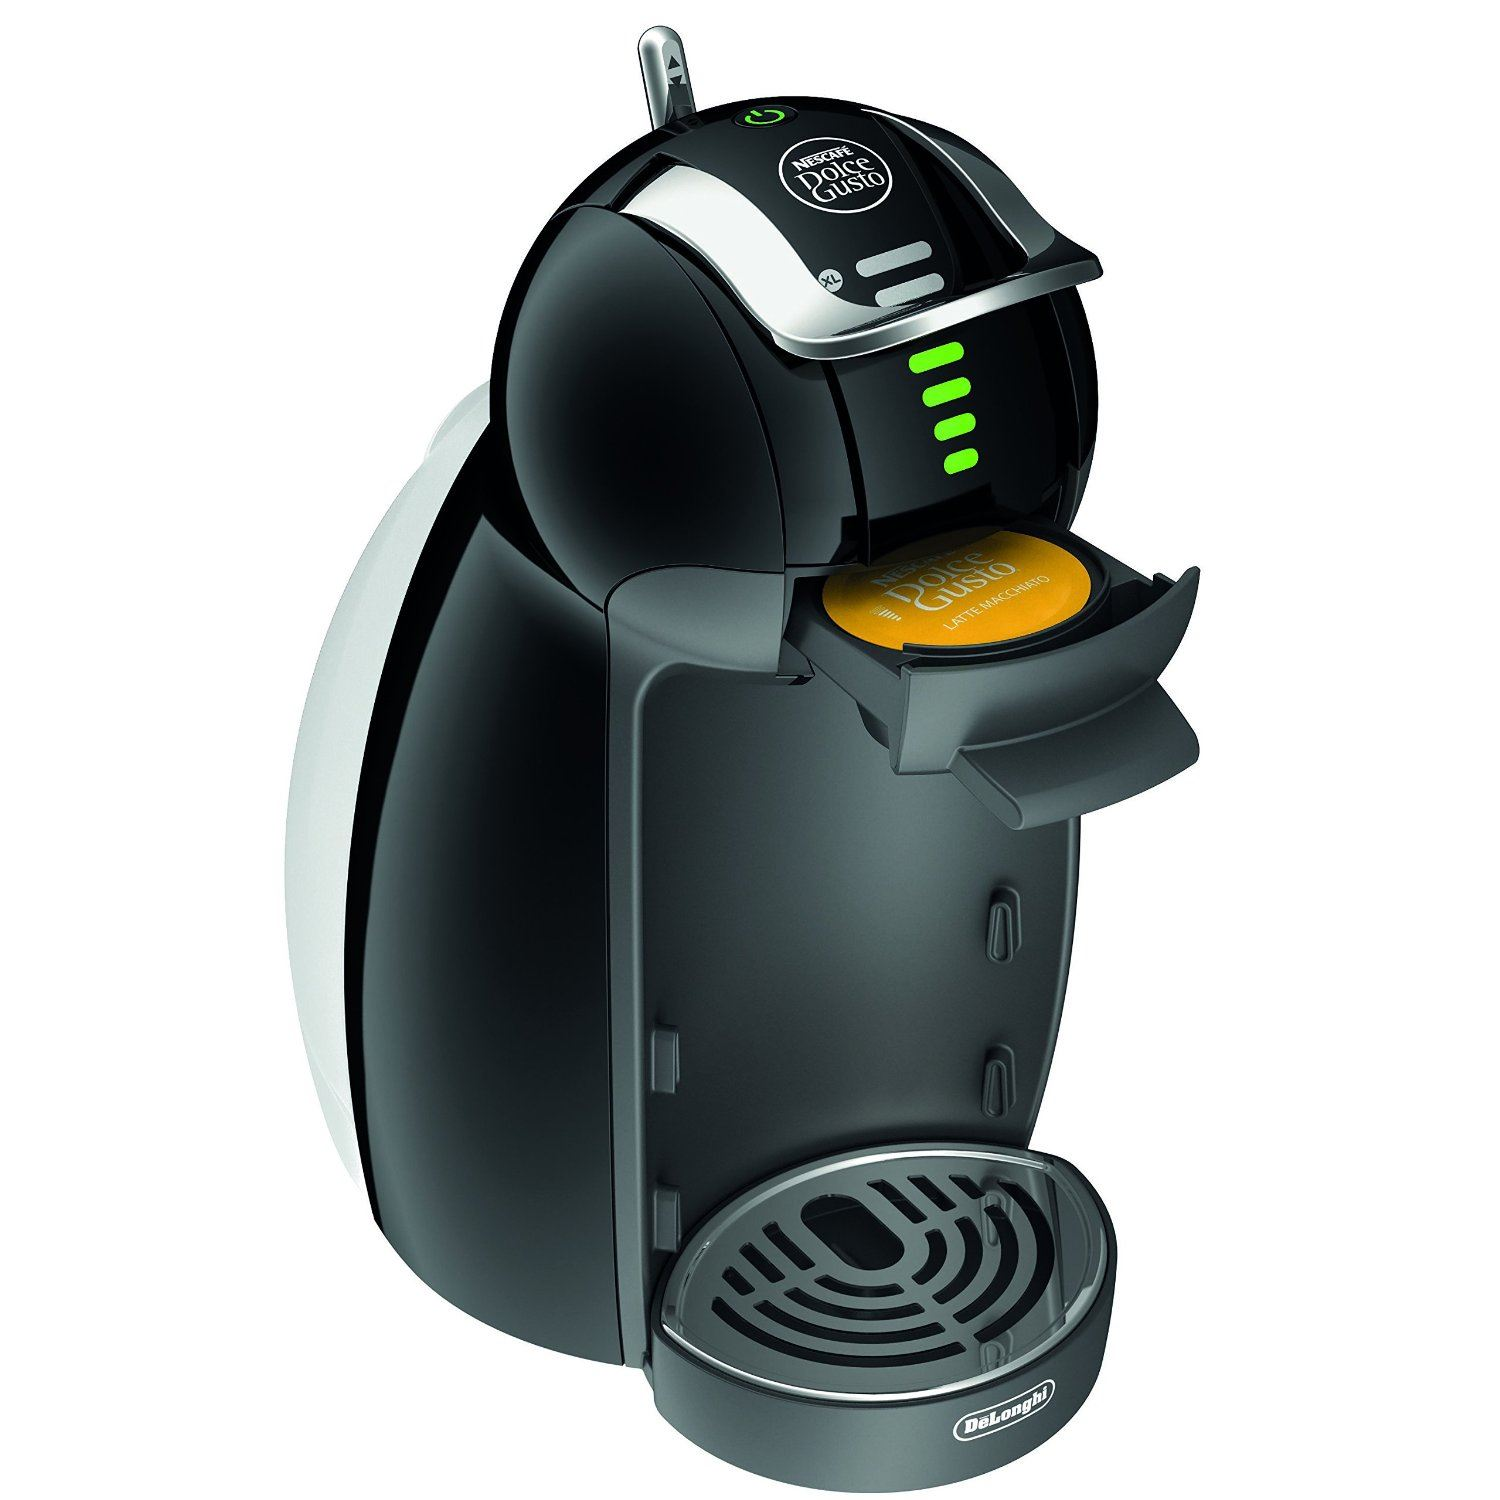 delonghi nescaf dolce gusto genio 2 edg465 b black pod. Black Bedroom Furniture Sets. Home Design Ideas